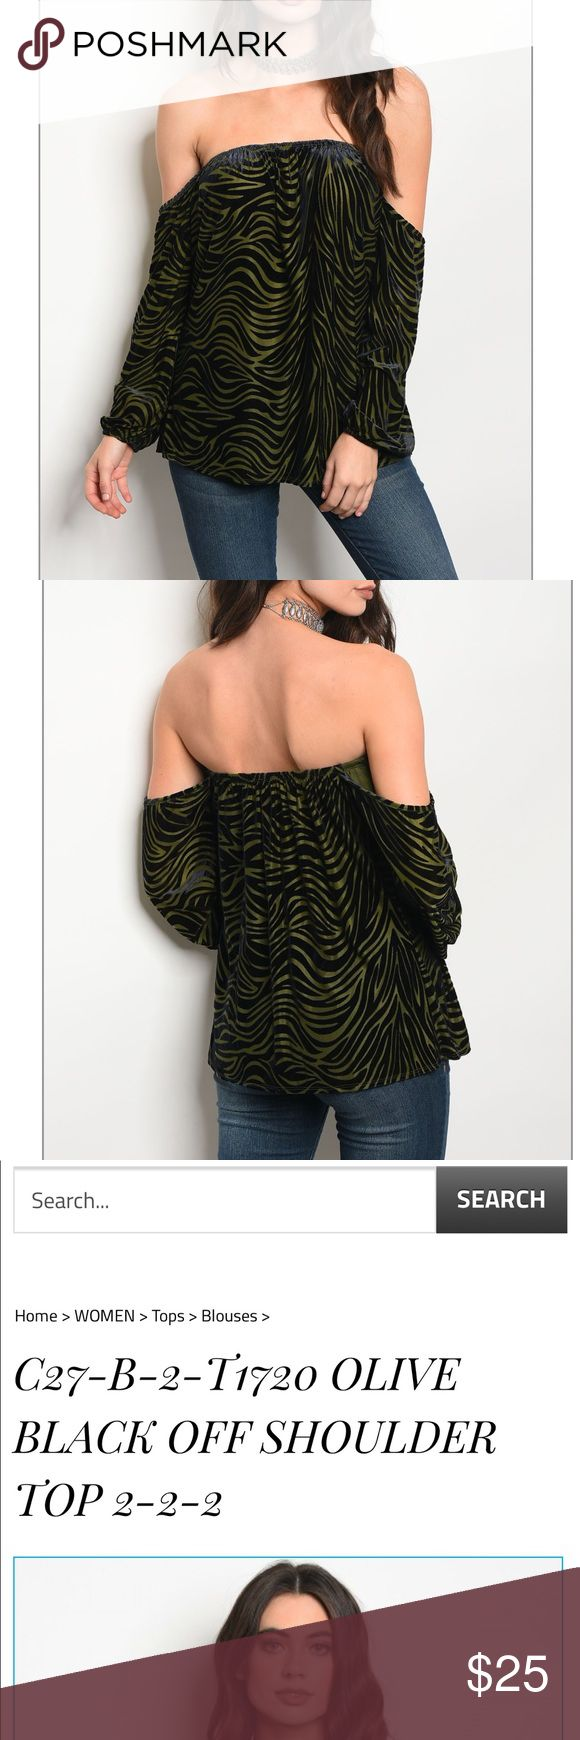 """PREORDER Black Olive Off Shoulder Top Tiger striped printed olive Black Off Shoulder Top.  Goes great with the black velvet leggings also in my closet. 60% Polyester 30% Nylon 10% Spandex. BUST RUNS SMALL. Please size up. Not recommended for a long torso. Measurements for small are: Length-21"""" Bust-30"""" Waist-34"""". Arrives Friday, 10/27 Style En Rose' Tops Blouses"""